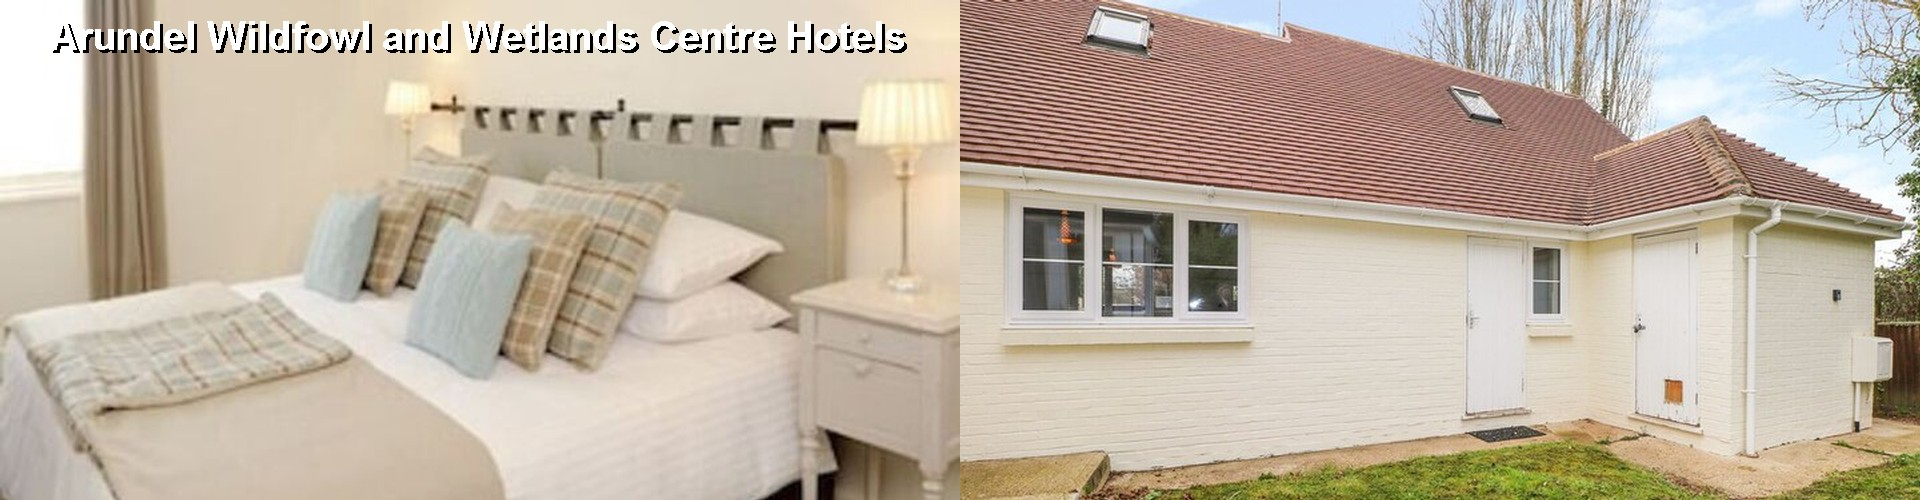 4 Best Hotels near Arundel Wildfowl and Wetlands Centre